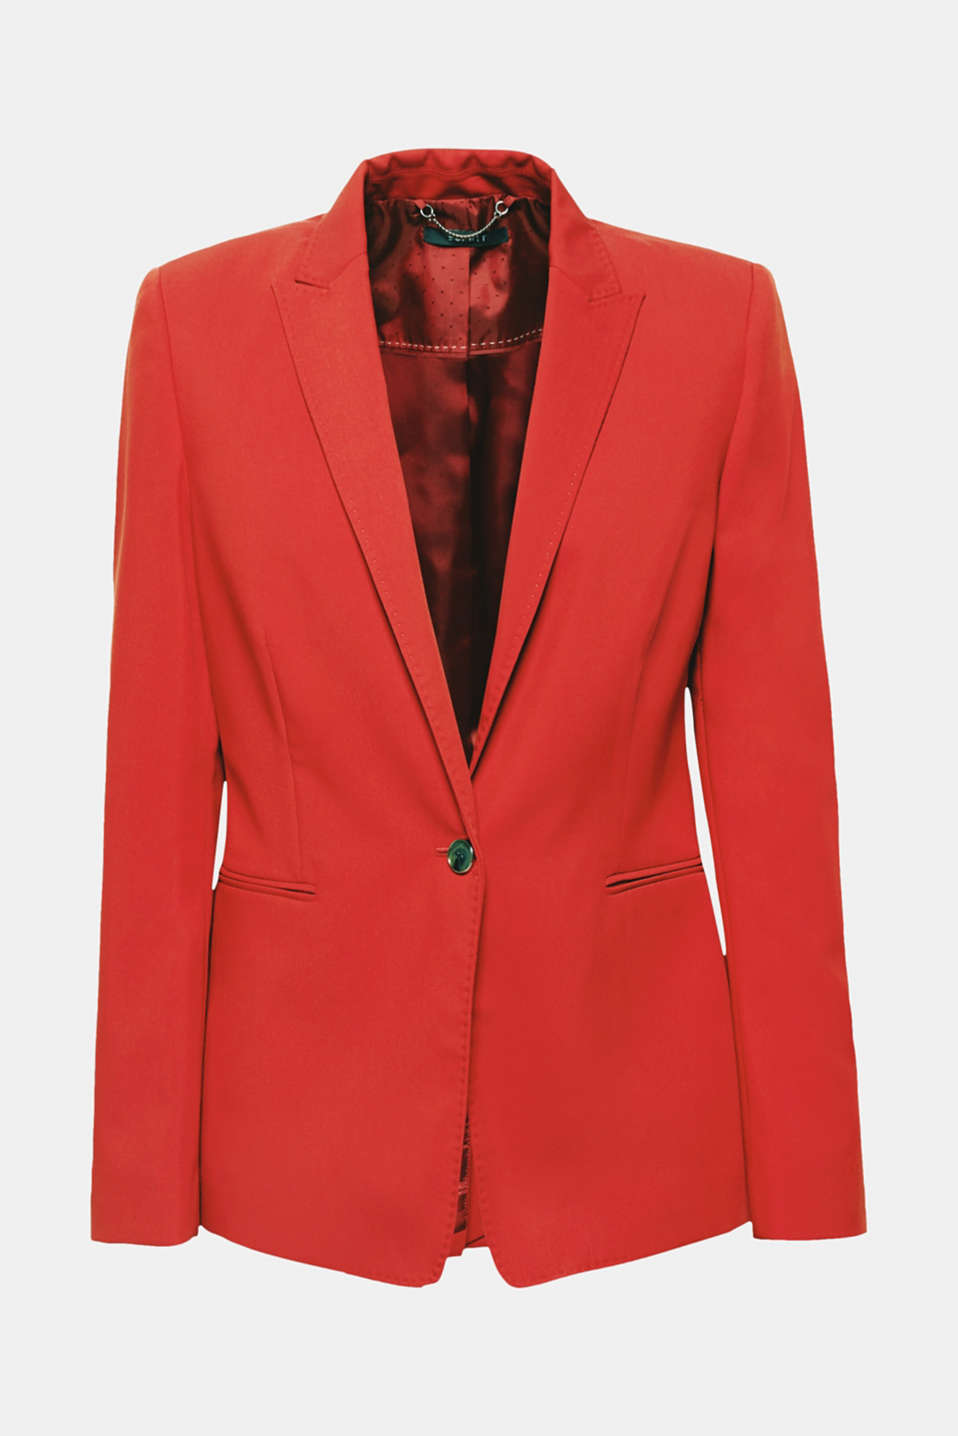 Can be worn with the matching trousers or on its own: the finely textured outer fabric in an on-trend colour and long, peaked lapel make this blazer look extremely fashionable.